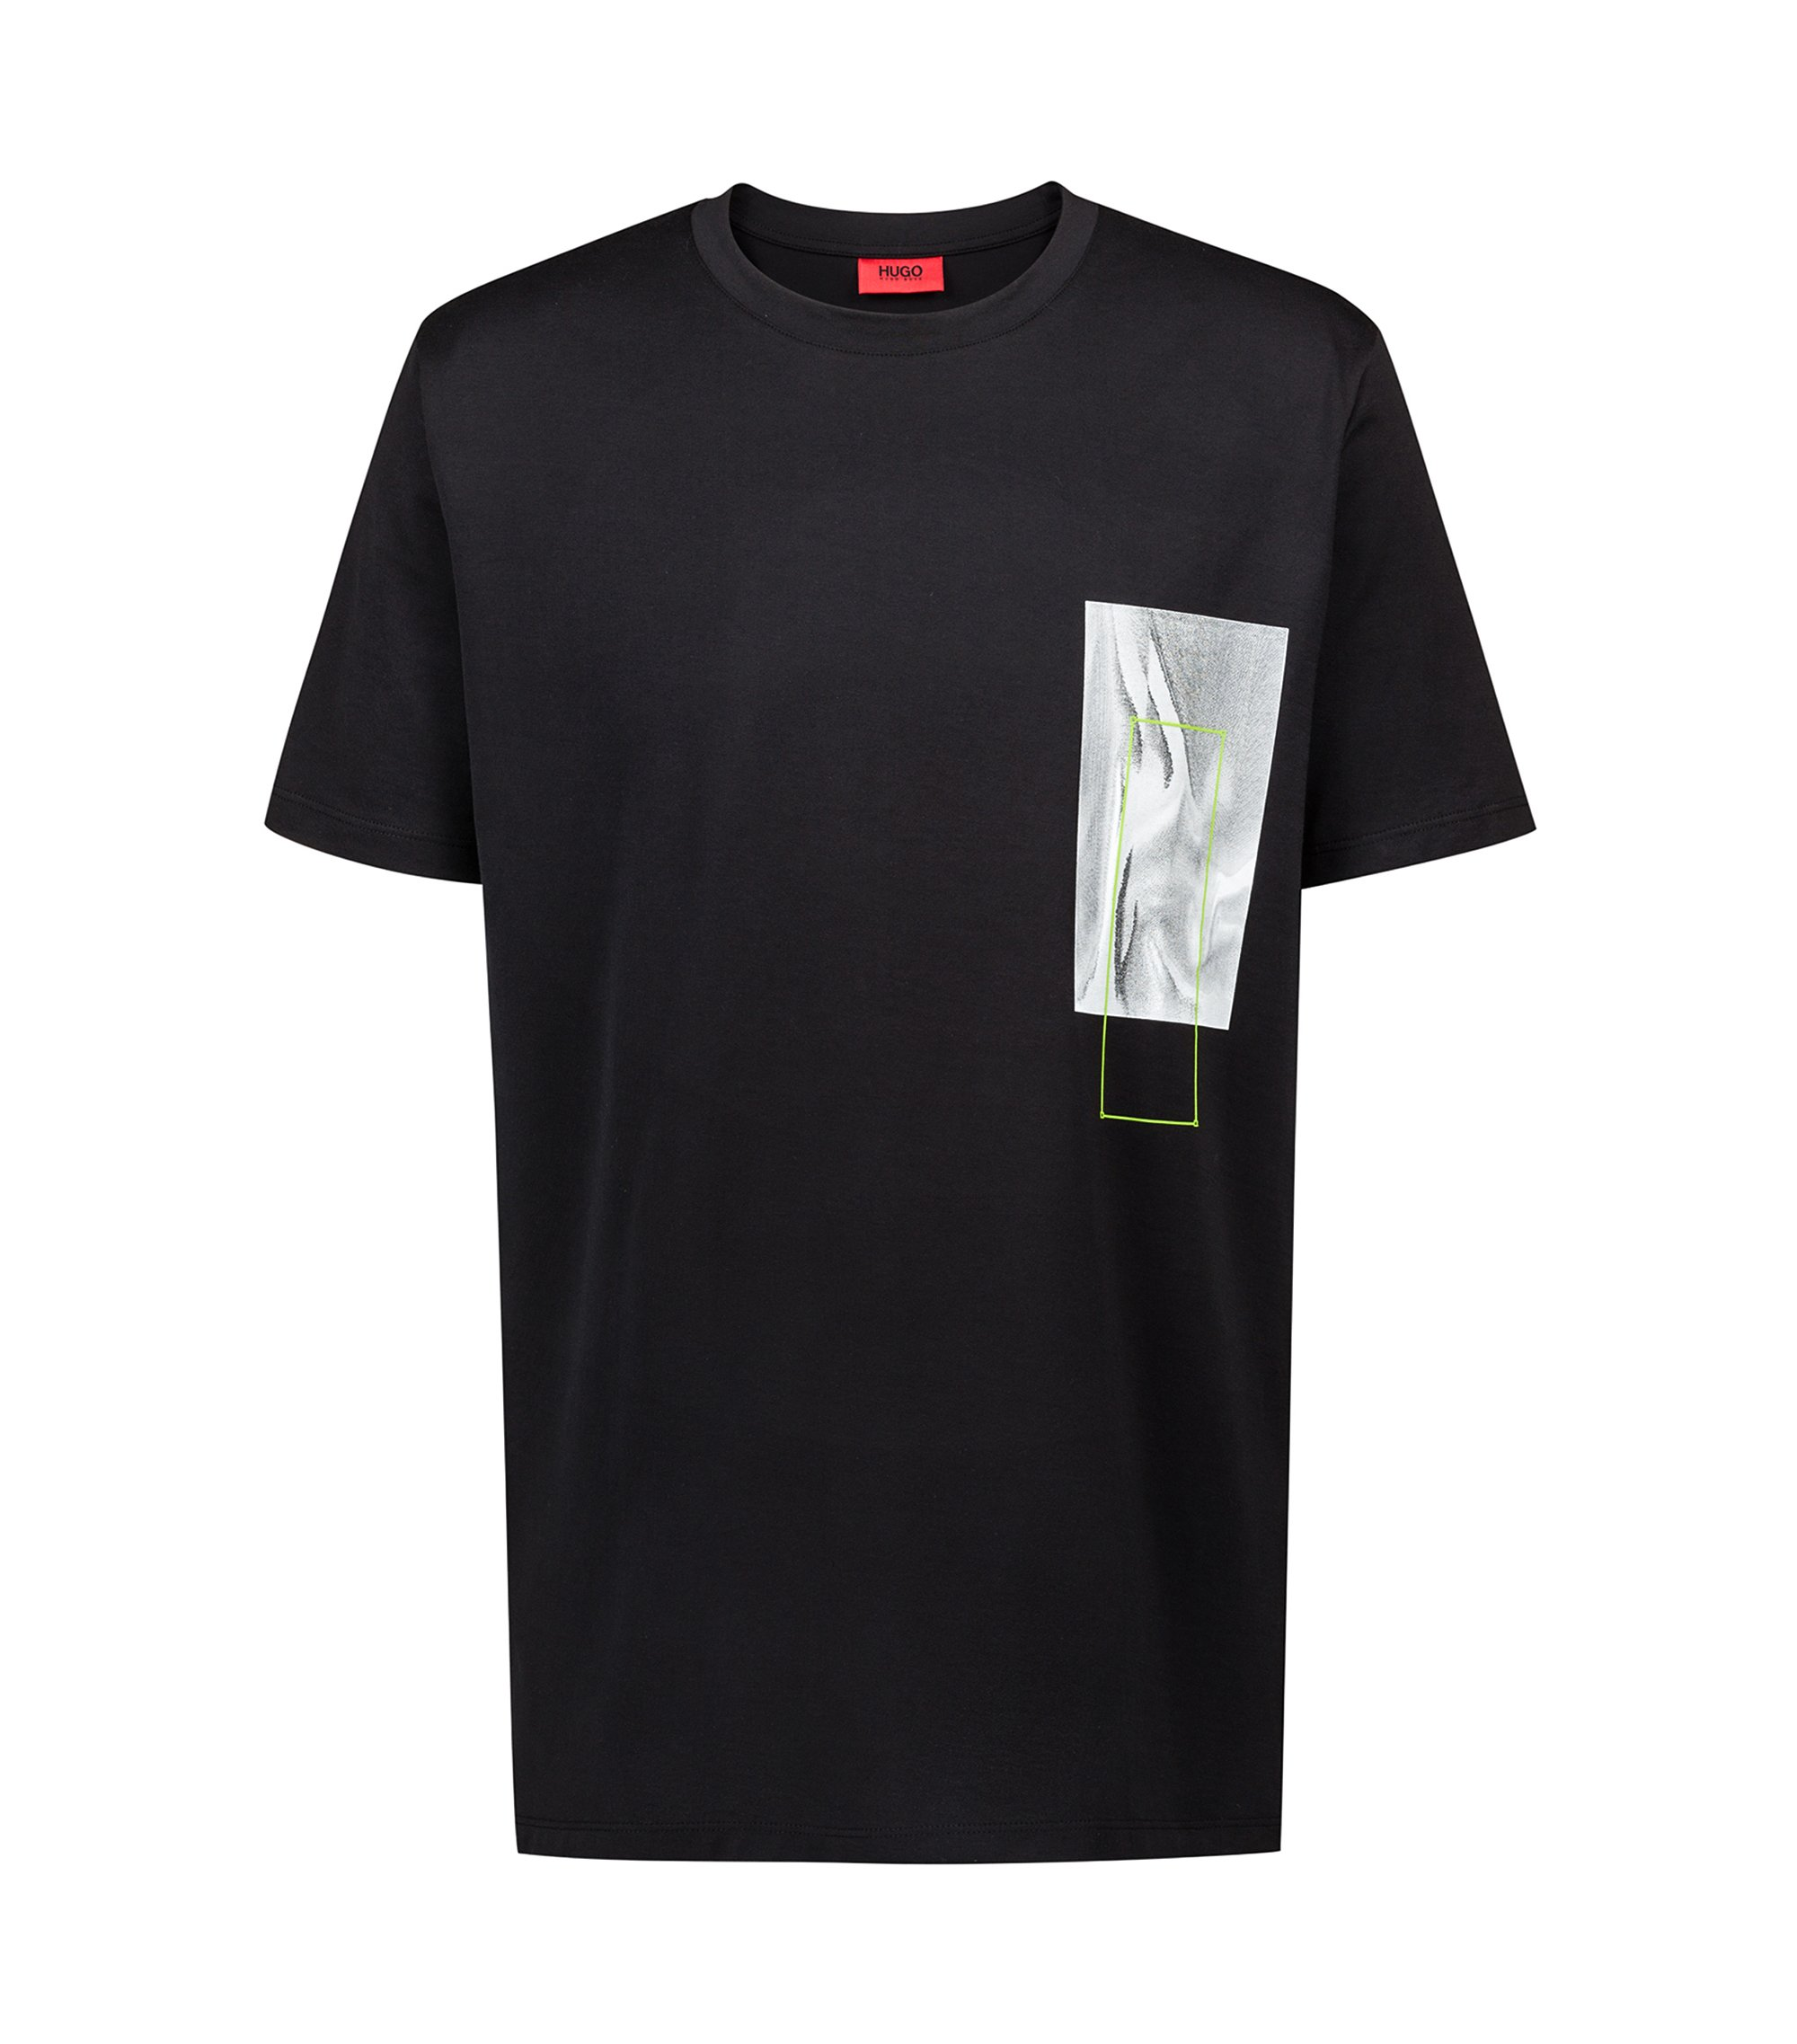 Bits & Bytes Capsule relaxed-fit T-shirt with digital-inspired print, Black